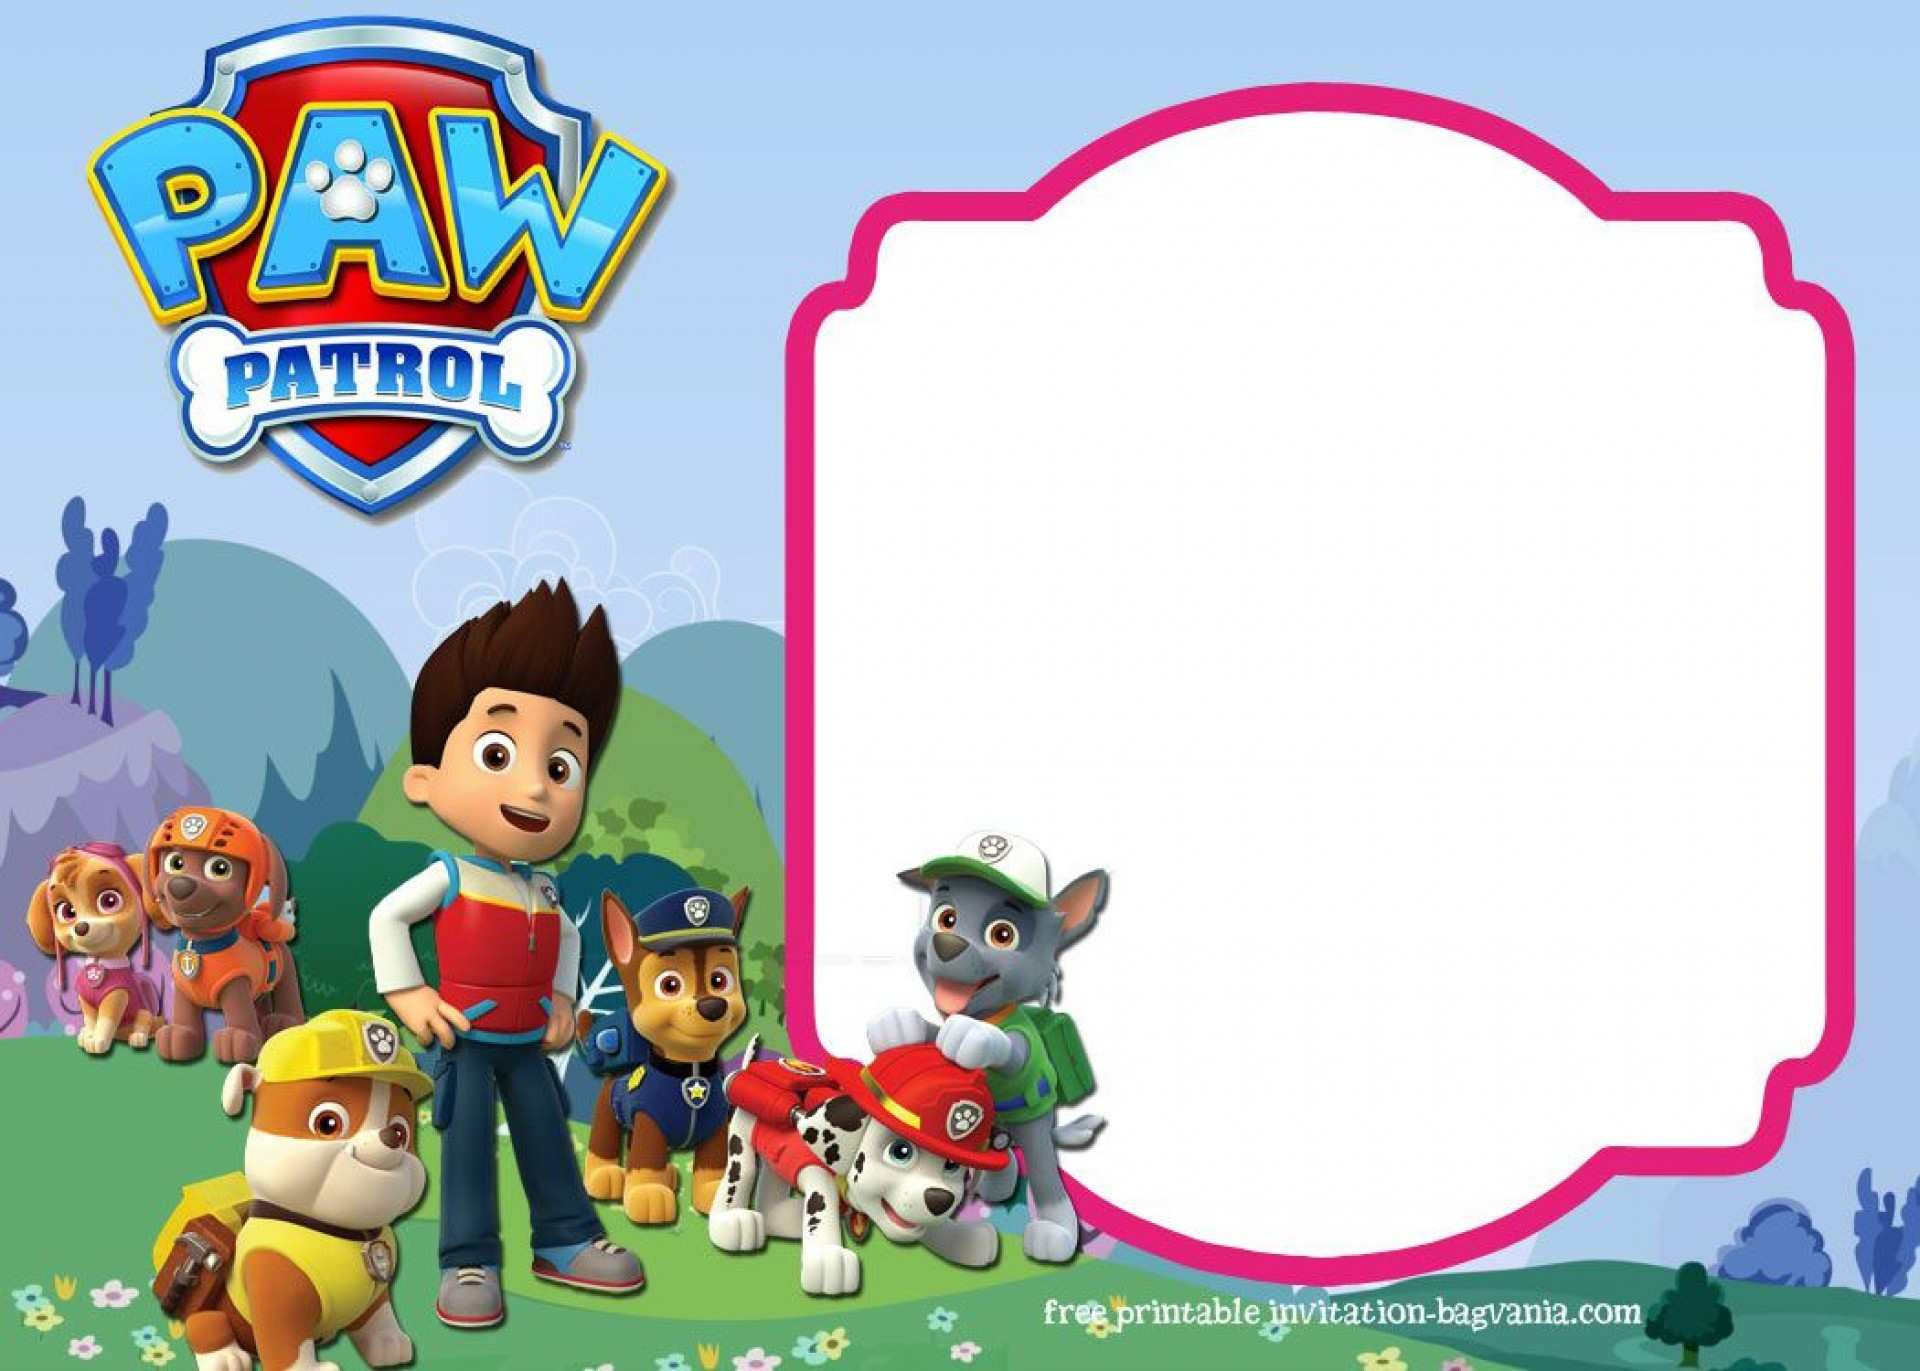 75 Free Printable Free Paw Patrol Birthday Invitation Template With Stunning Design With Free Paw Patrol Birthday Invitation Template Cards Design Templates